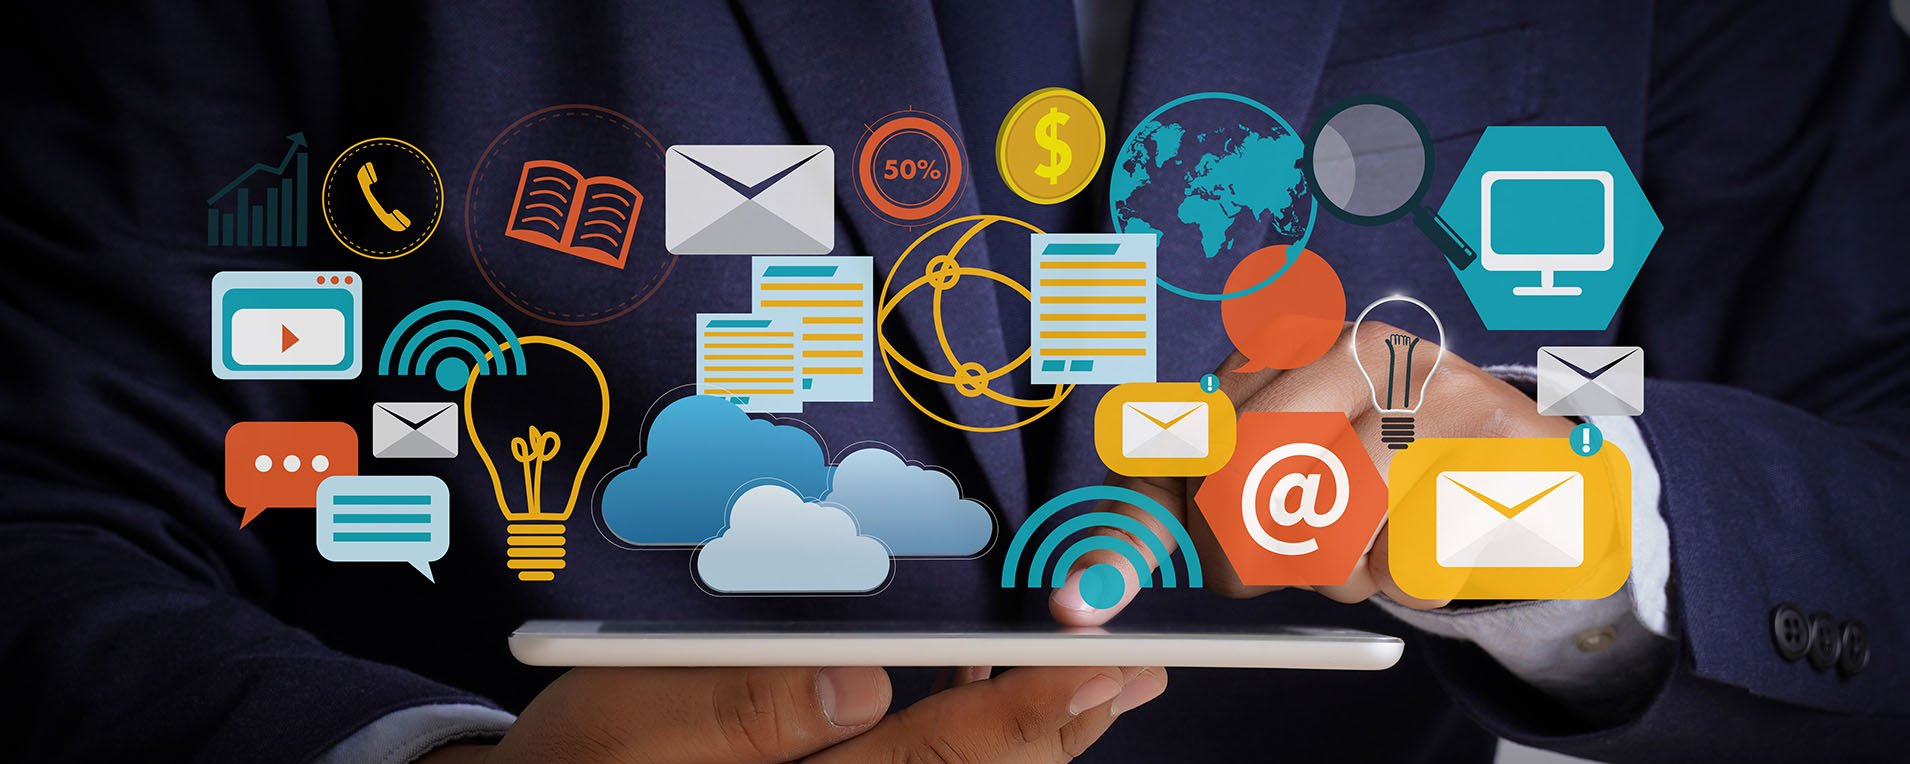 Marketing Automation Trends for 2019